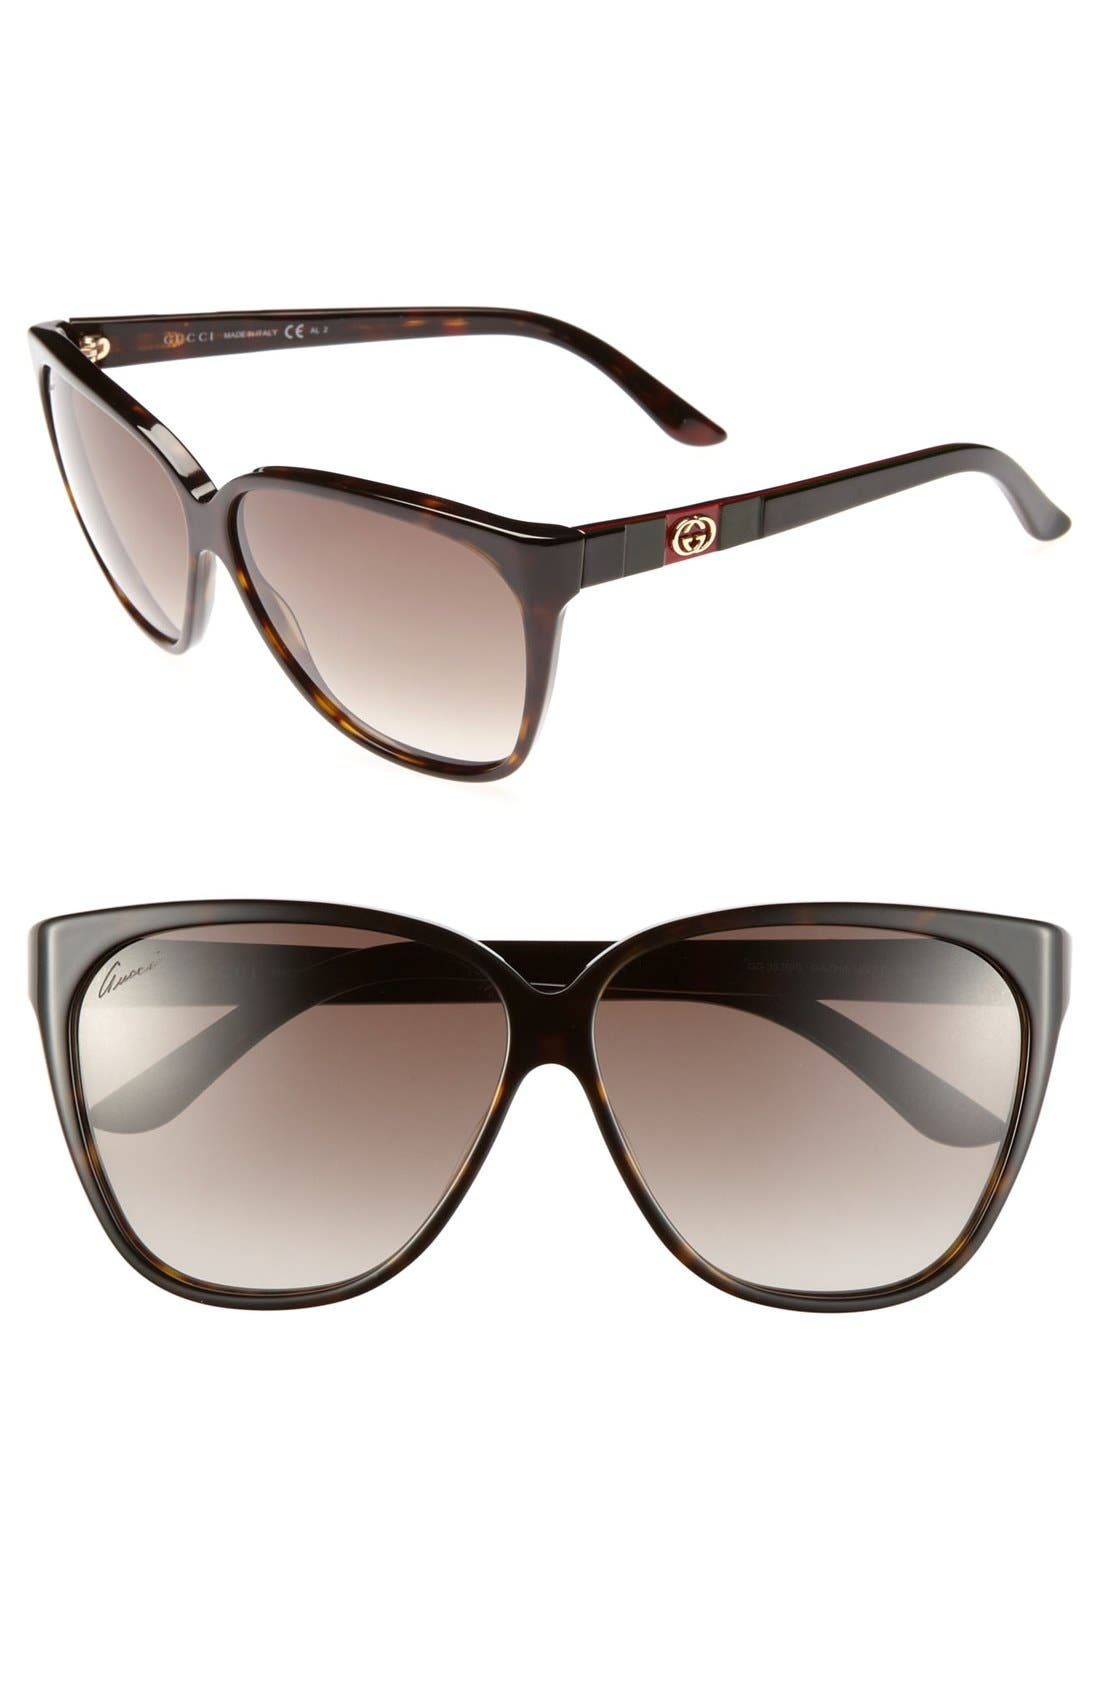 Main Image - Gucci 62mm Sunglasses